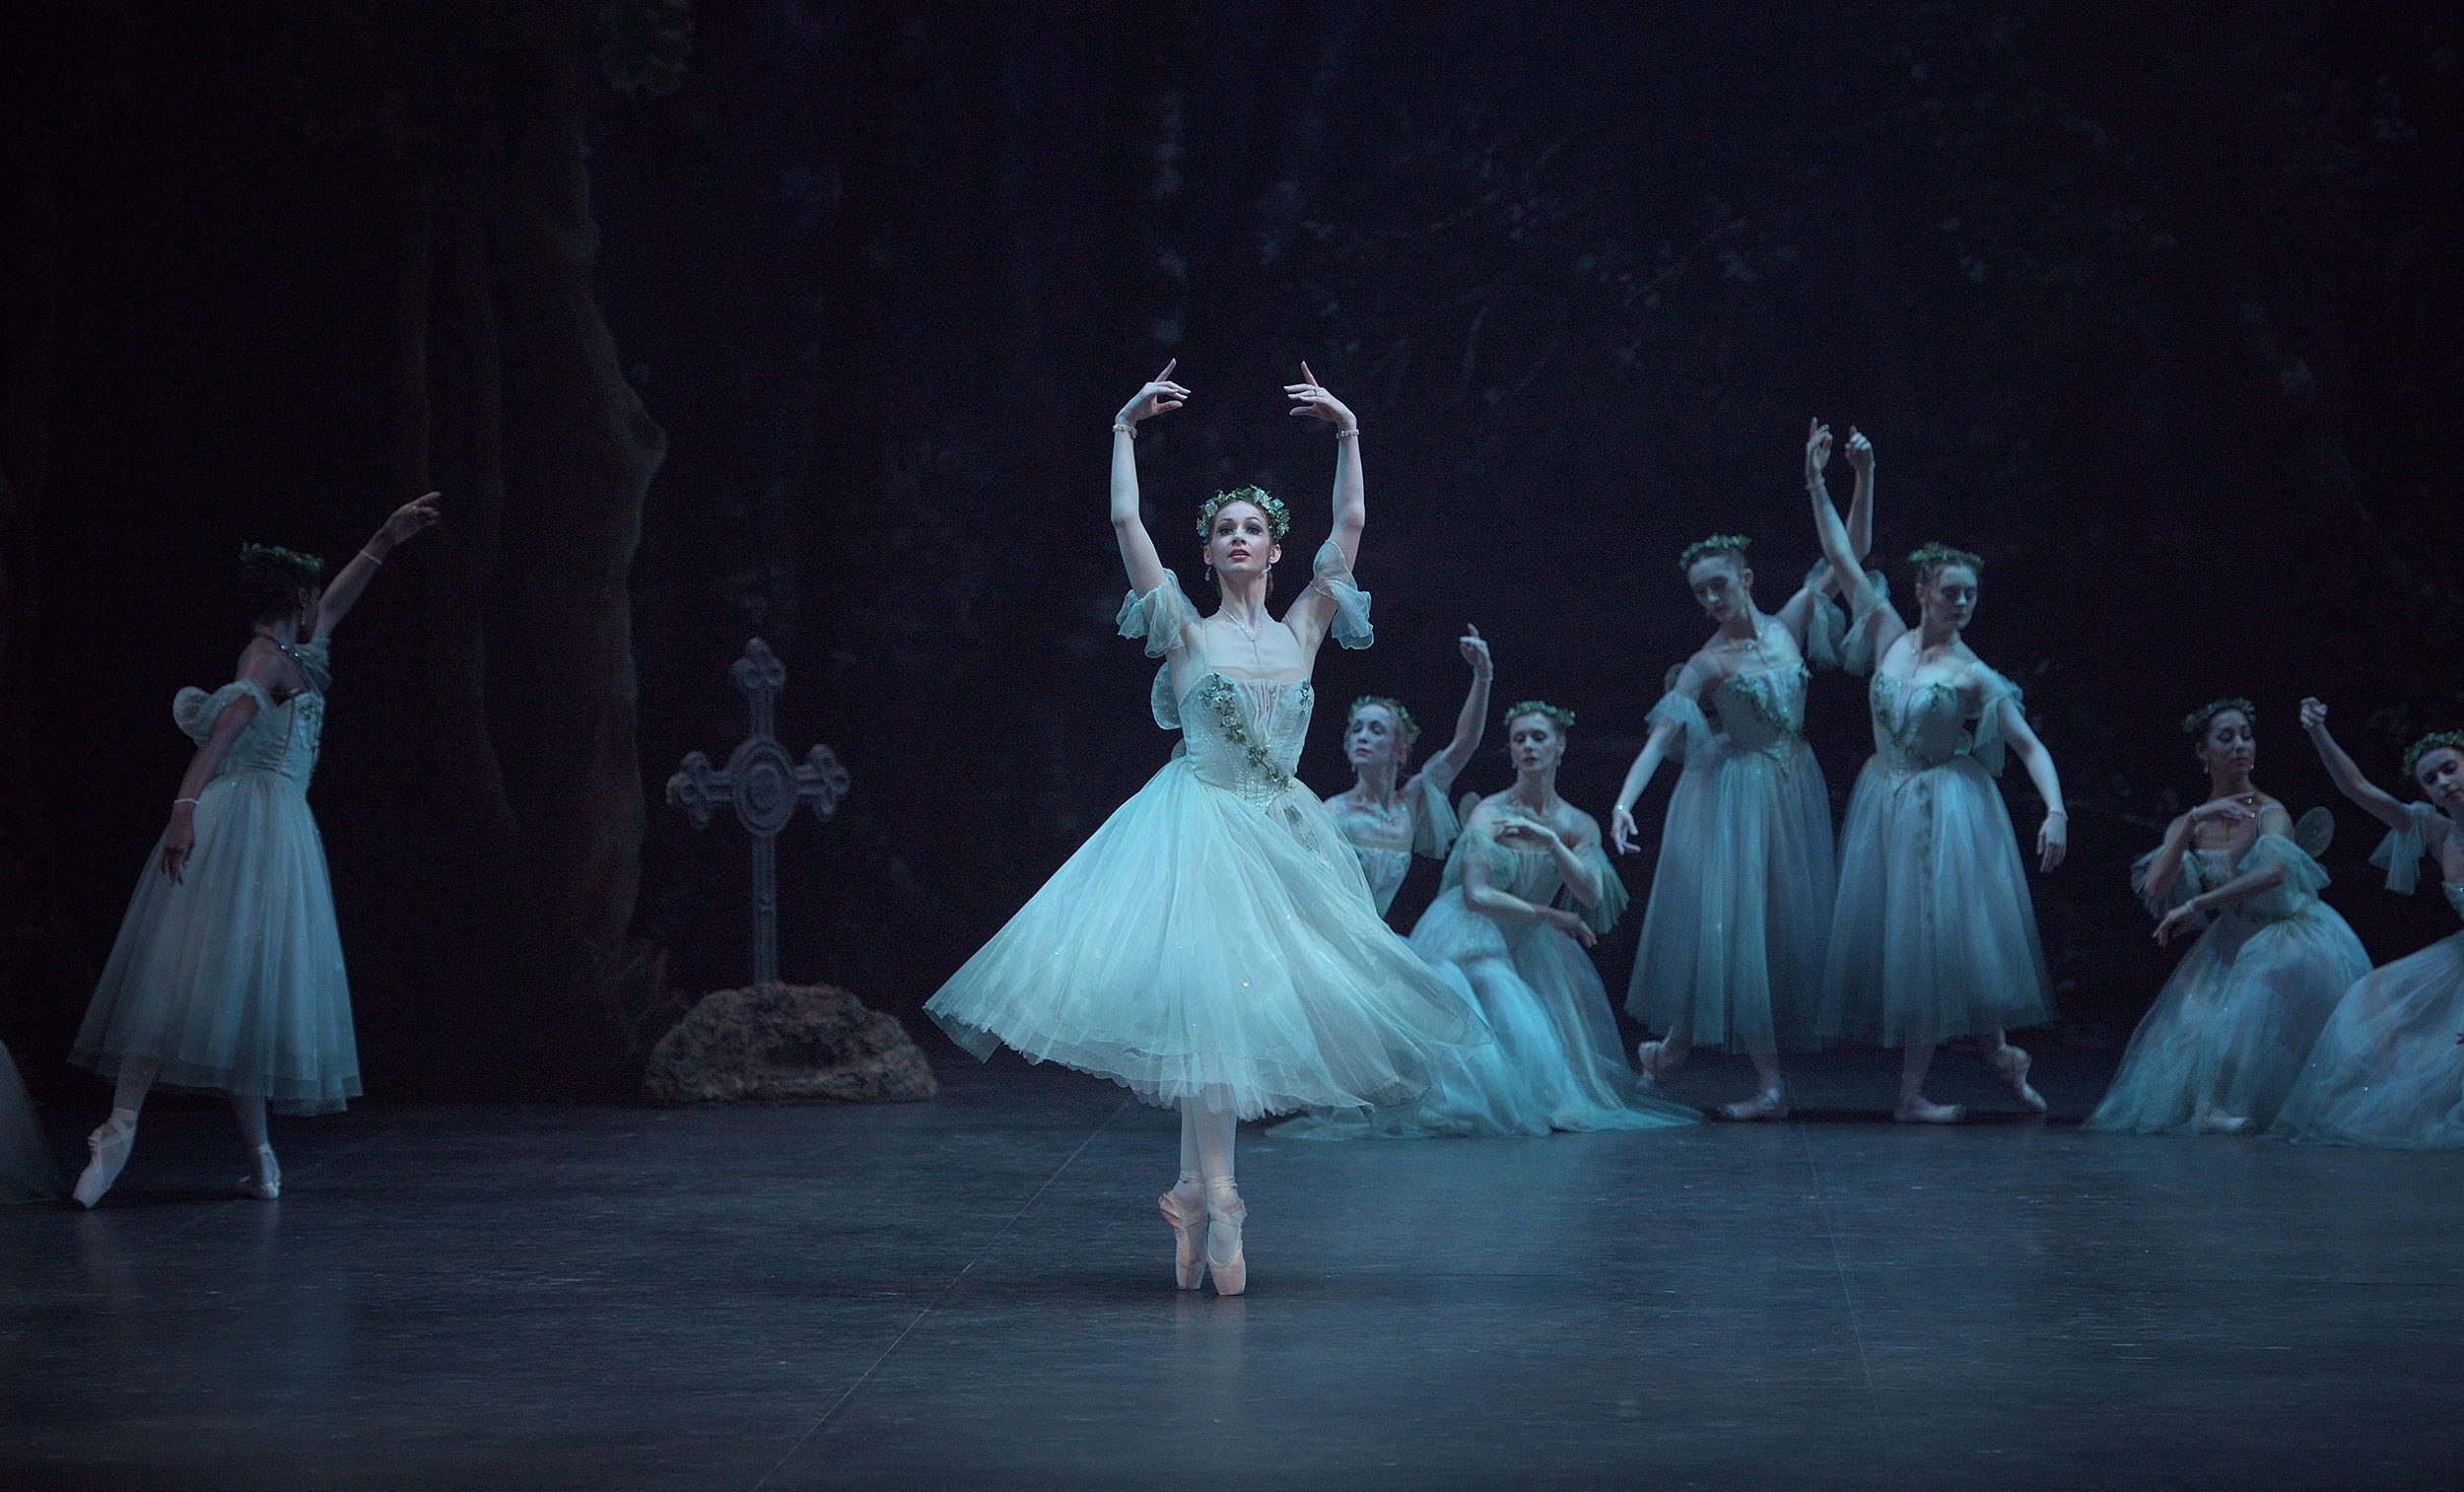 Laurretta-Summerscales-as-Myrtha-in-Mary-Skeaping's-Giselle-(c)-Laurent-Liotardo-(4)